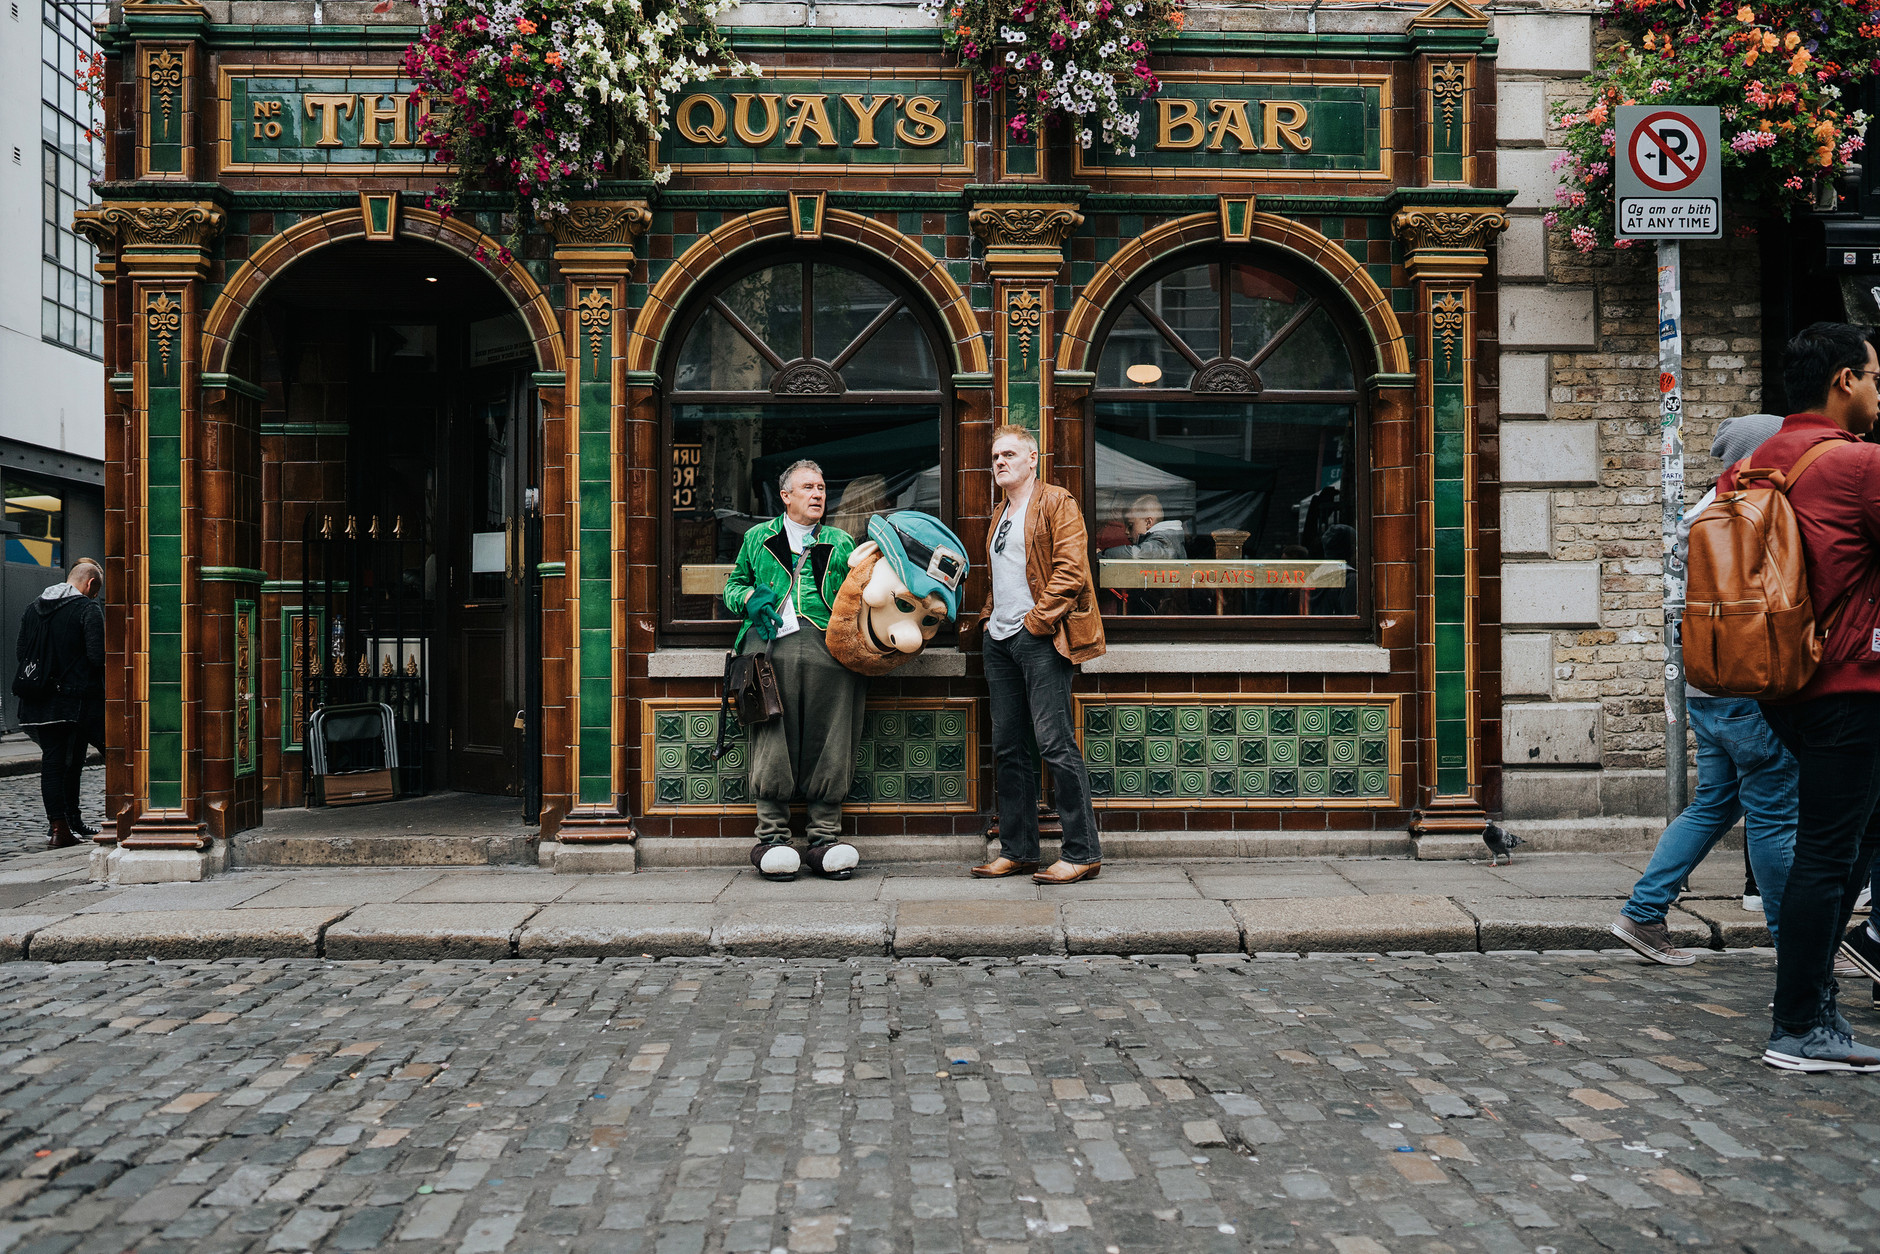 Leprechaun chatting with a man in front of Quay's Bar in Temple Bar, Dublin